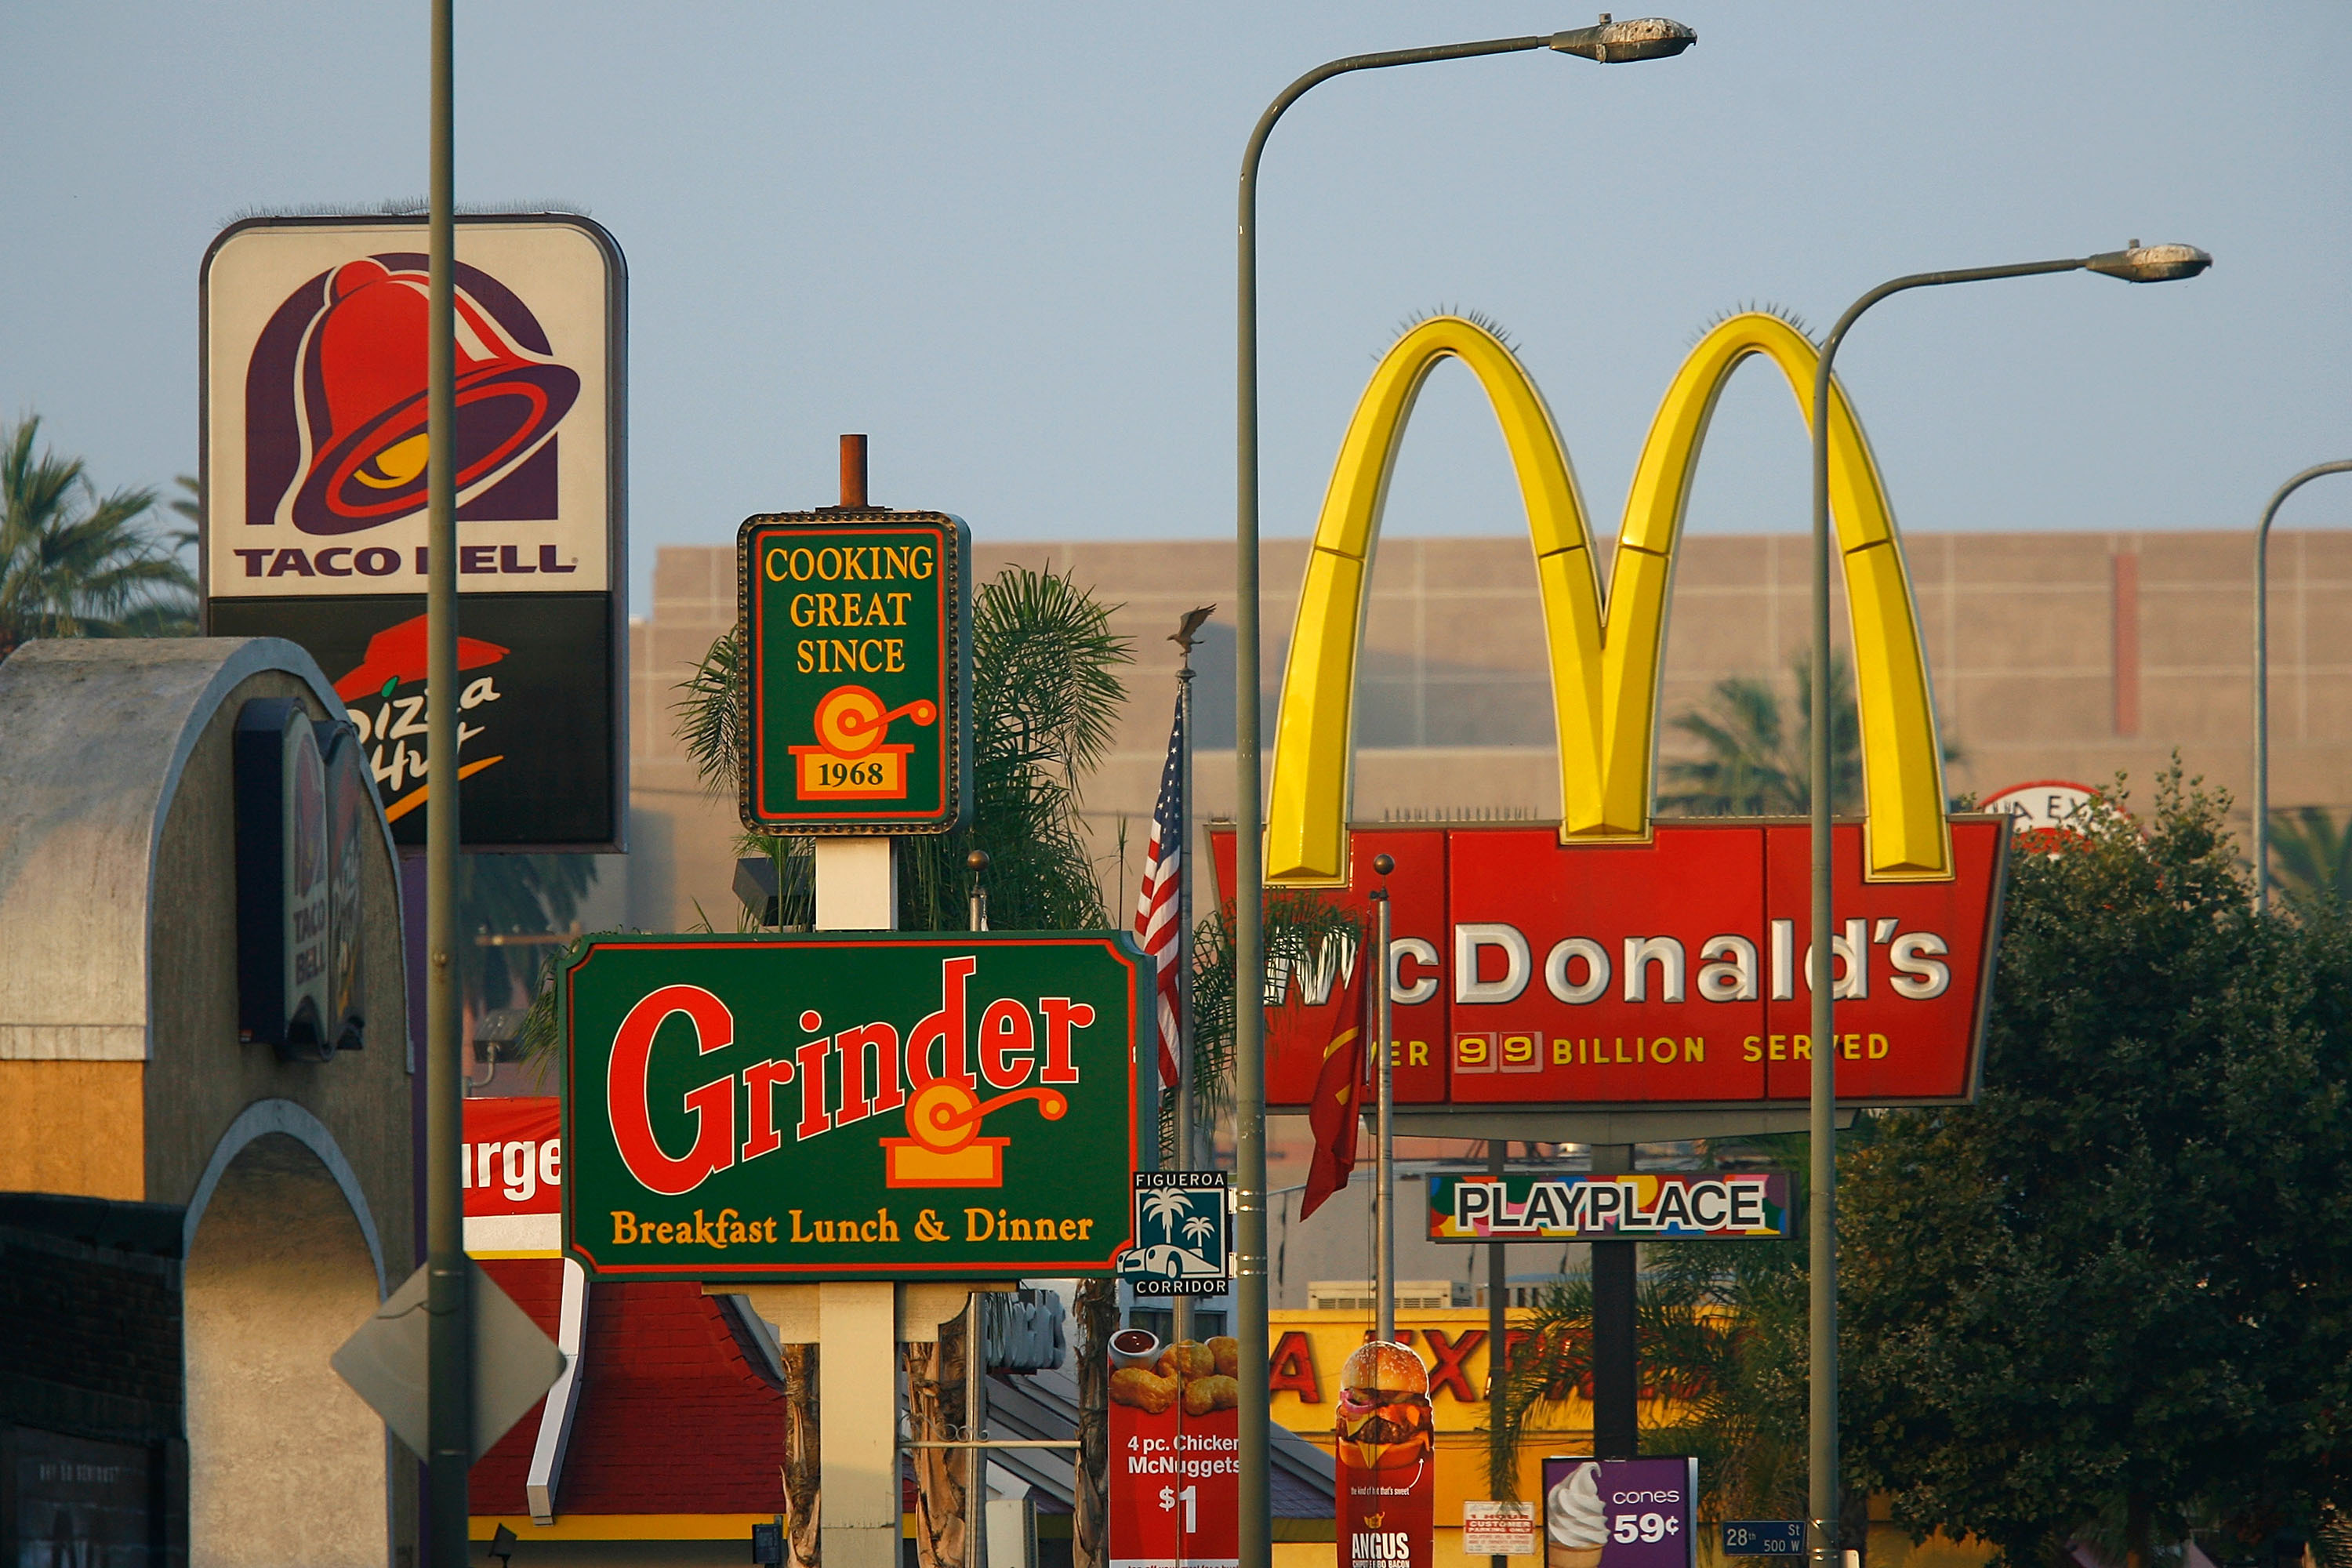 Fast food restaurants thrive in one of the poorest areas of Los Angeles. South LA has the highest concentration of fast-food restaurants of the city, about 400, and only a few grocery stores. (Photo by David McNew/Getty Images)